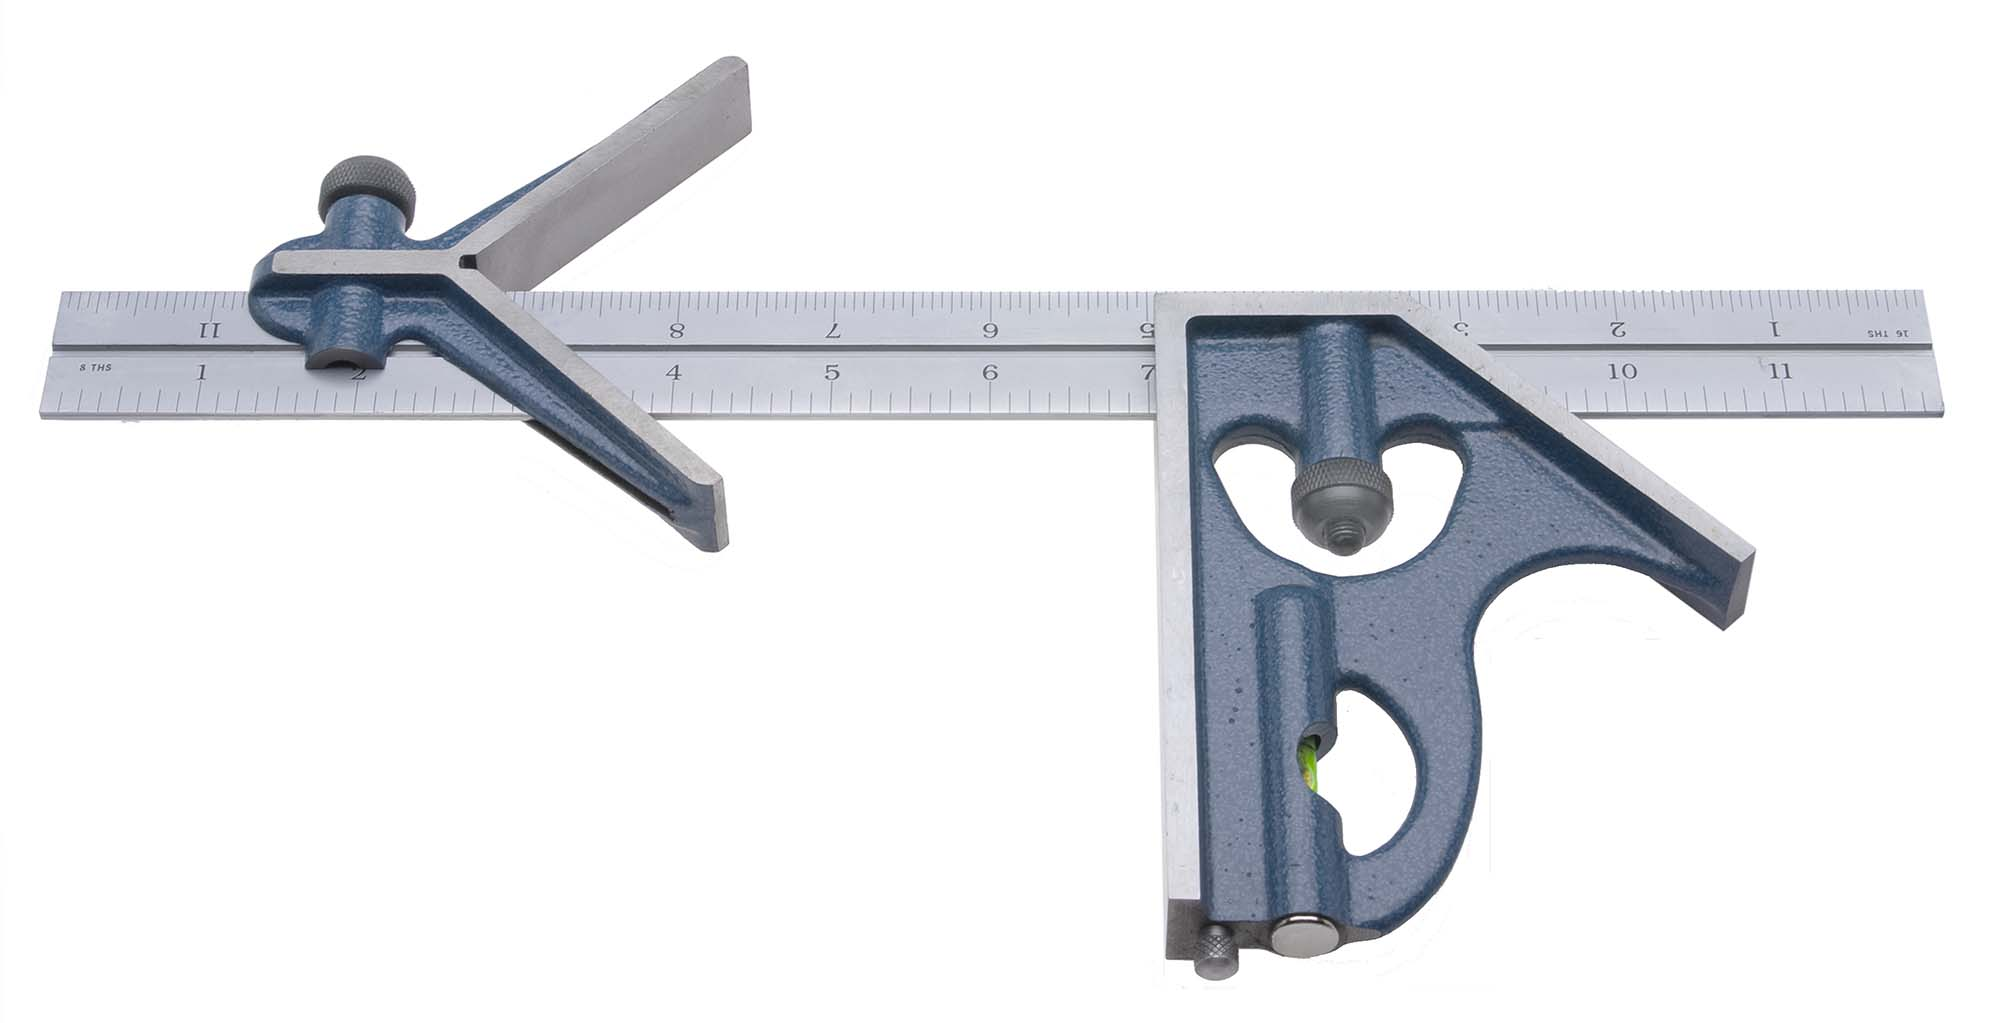 "PEC Tools 7122-012 4R Combination Square 12"" 3 Piece Set (no protractor head), reads 32nds, 64ths, 8ths, 16ths."